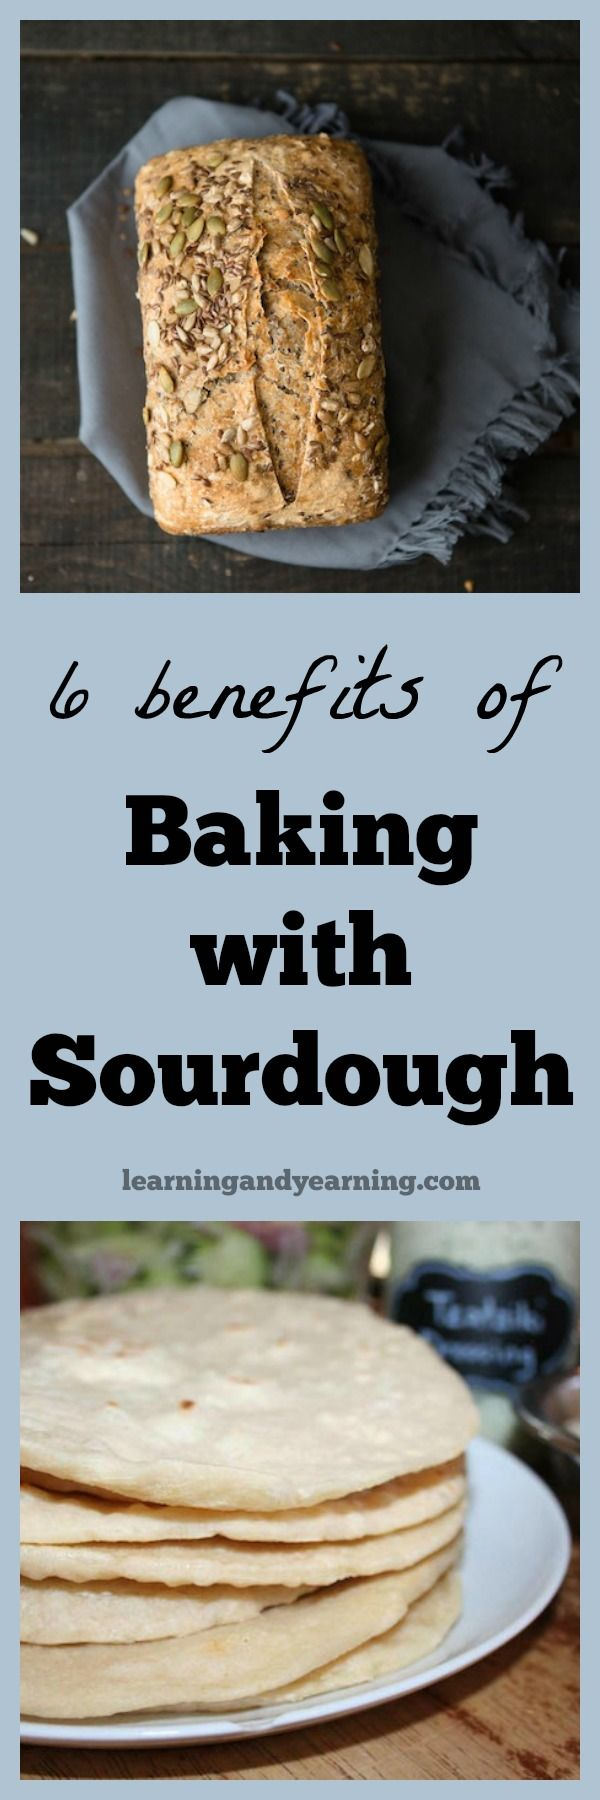 Best 25 commercial cooking ideas on pinterest kitchen layout six benefits of baking with sourdough forumfinder Choice Image